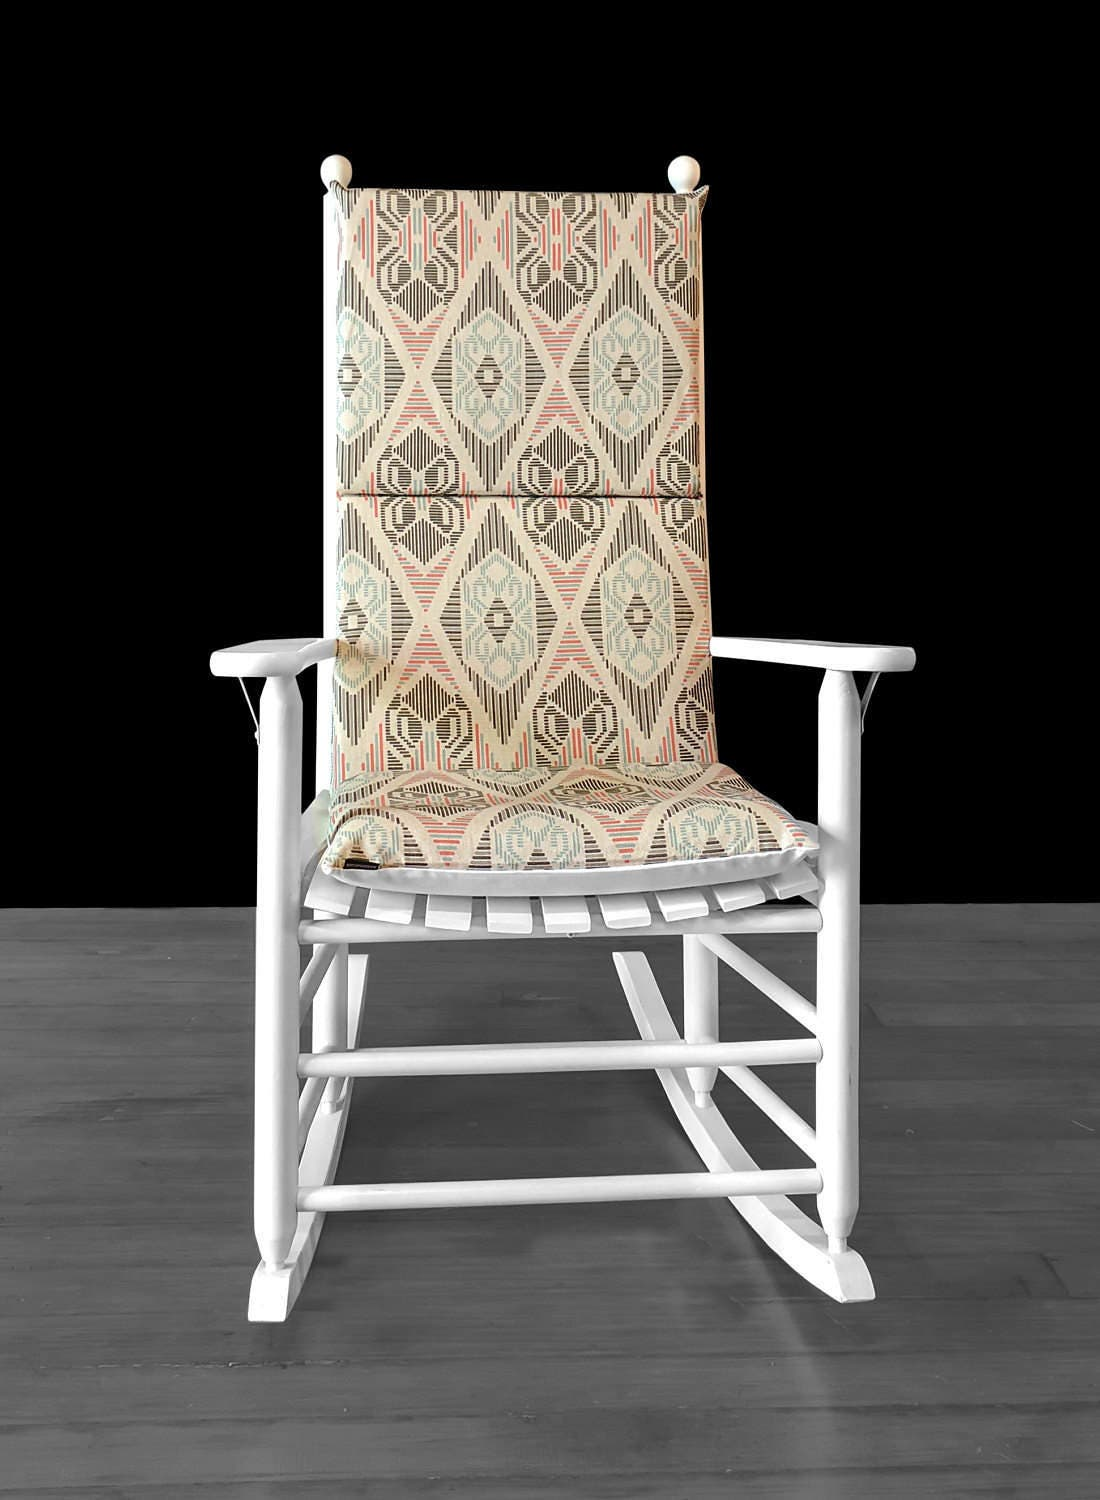 Miraculous 70S Style Rocking Chair Pad Vintage Era Rocking Chair Dailytribune Chair Design For Home Dailytribuneorg